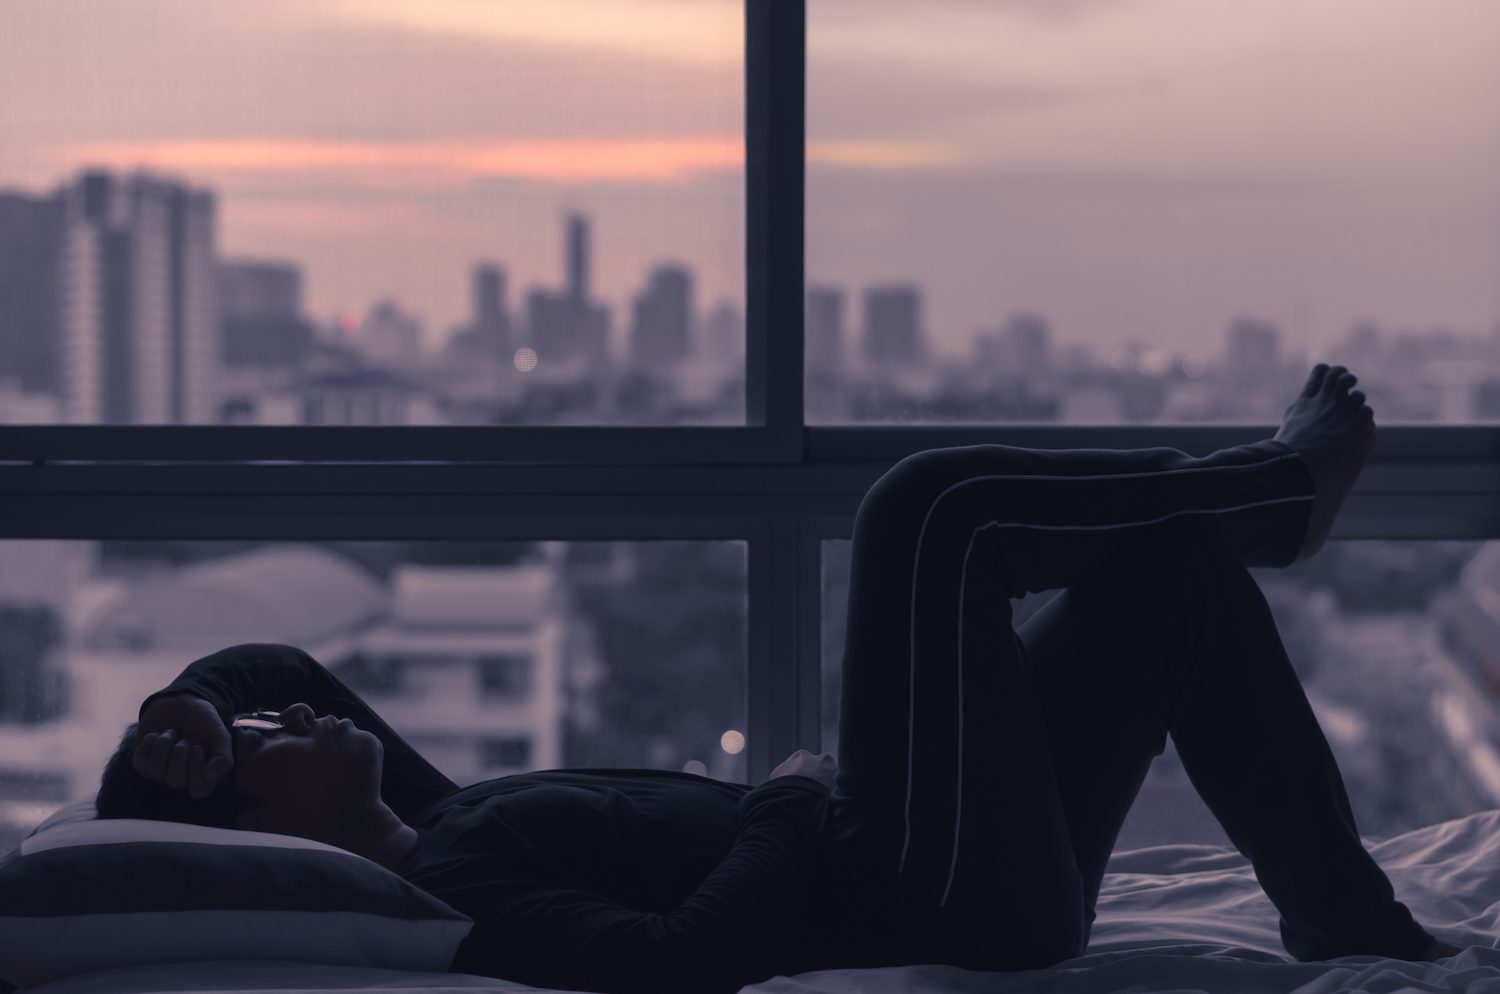 Man awake in an urban environment during the early hours of the morning